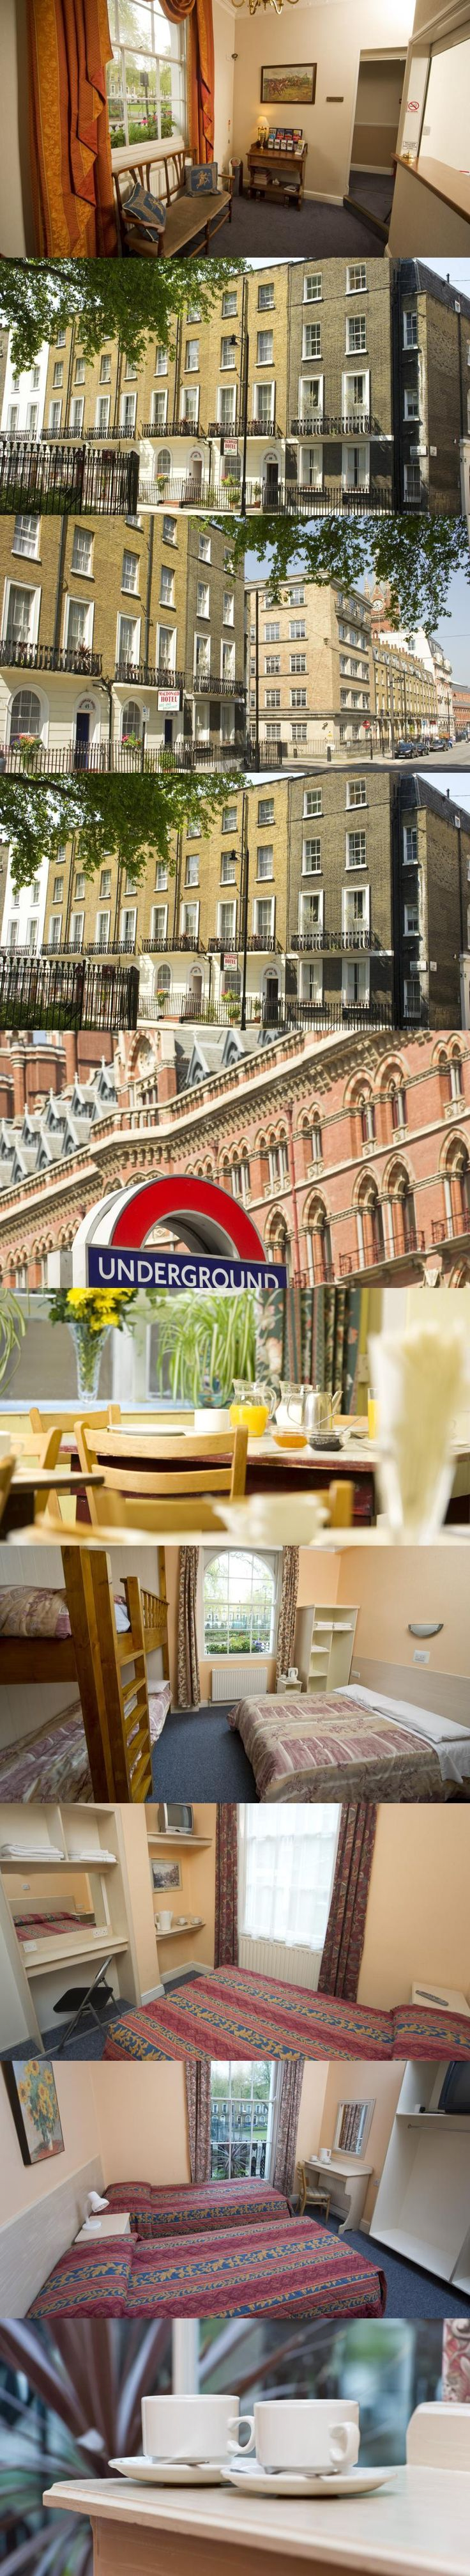 Macdonald Hotel. Just 150 metres from King's Cross St. Pancras, this bed and breakfast is 5 minutes' walk from St. Pancras International Rail Station, which offers Eurostar services to Europe.  Euston Rail Station is within a 15-minute walk. #London